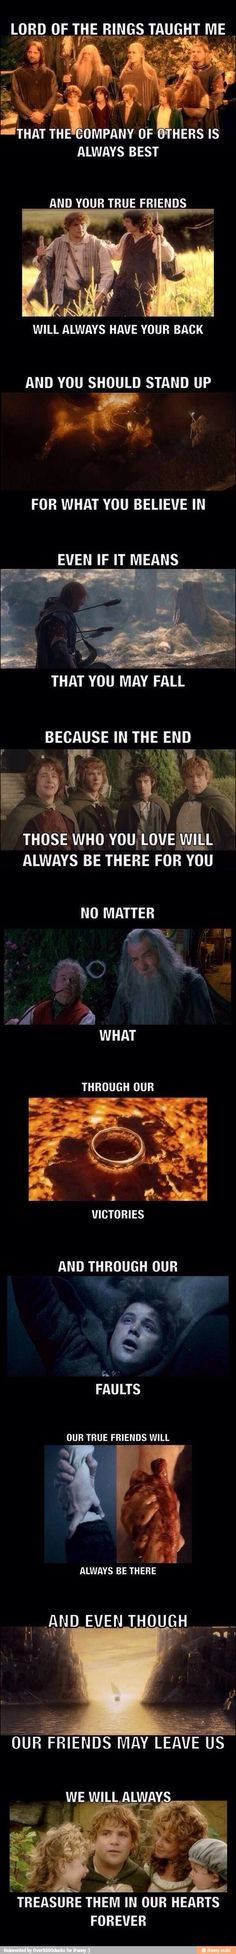 This is why I love the Lord of the Rings,the lessons it taught me.